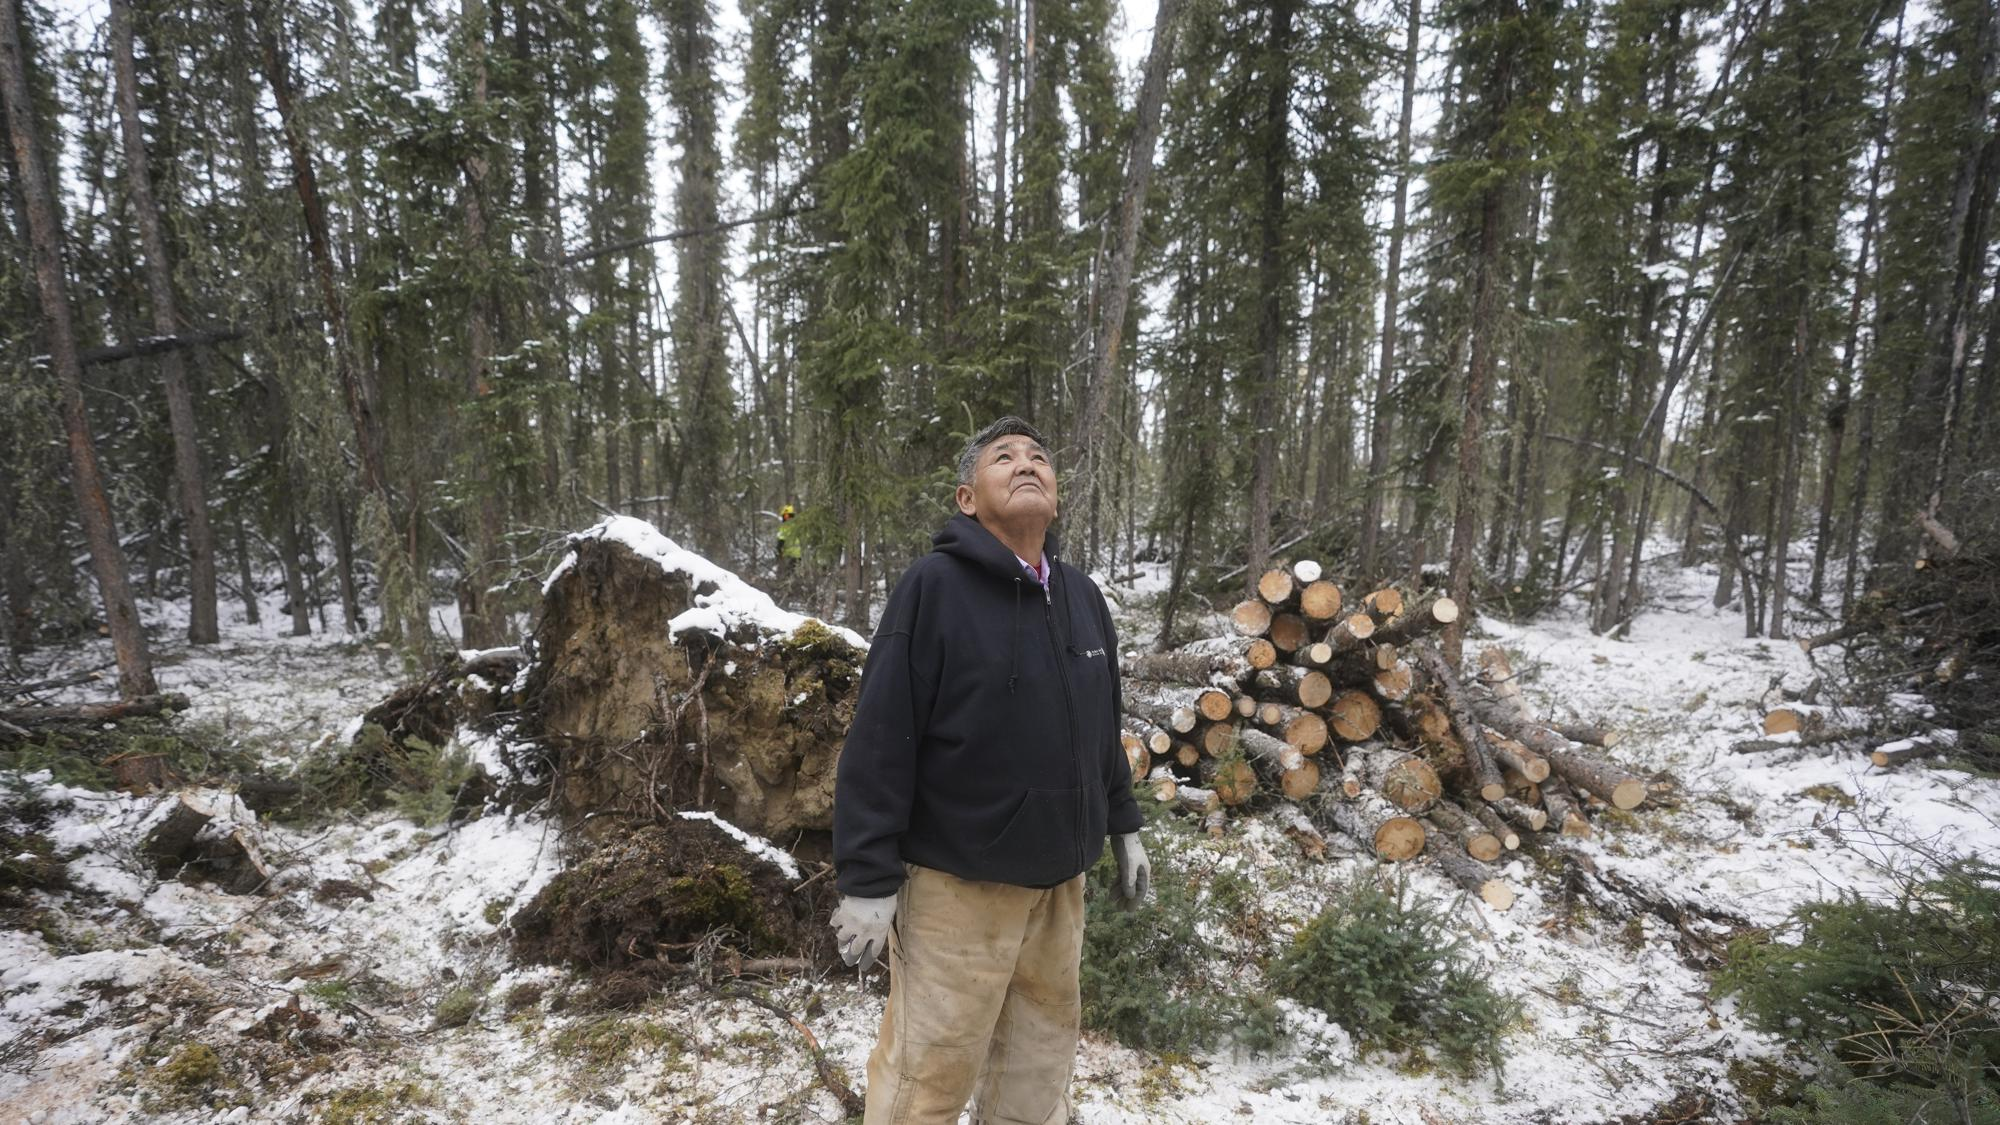 """Alfred Jonathan looks at the trees Thursday, Sept. 23, 2021, in Tanacross, Alaska.""""If somebody gets sick around there, there's no place to take them,"""" said 78-year-old Alfred Jonathan. He tells people that COVID is here.""""This one is pretty scary,"""" said Jonathan, who encouraged people to get vaccinated if for nothing else, for the sake of their children and grandchildren. """"And the other people that didn't get vaccinated?"""" he said. """"Gosh, we're afraid for them.""""(AP Photo/Rick Bowmer)"""